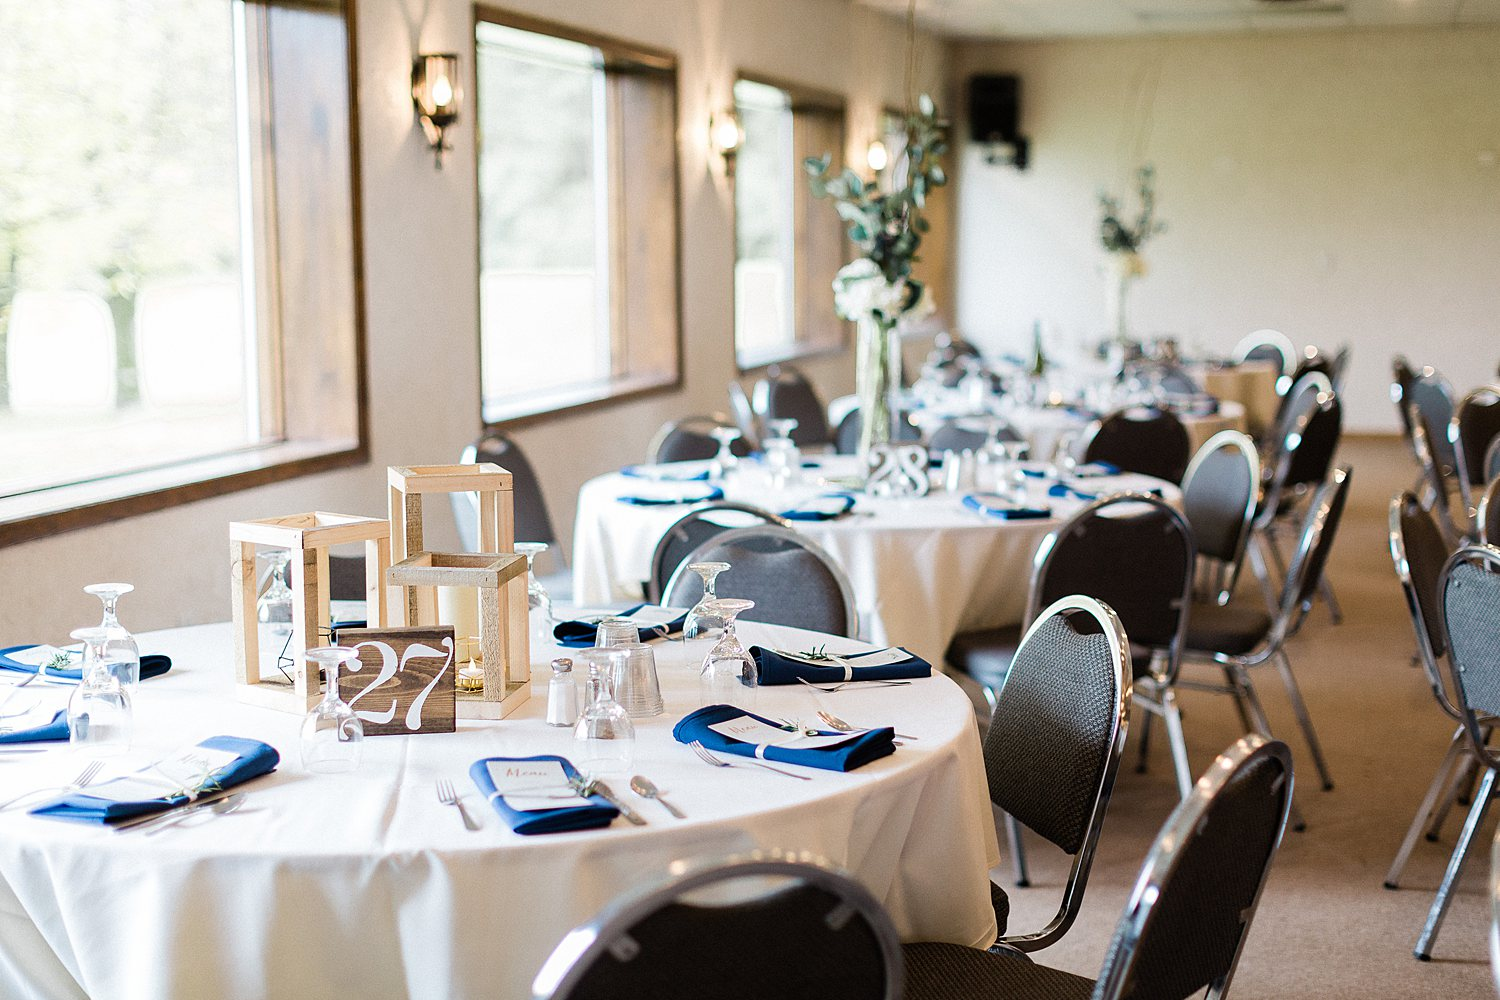 North_Central_Wisconsin_Event_Wedding_Venues_Fall_Weddings_The_Bailiwick_Venue_James-Stokes-Photography051.jpg